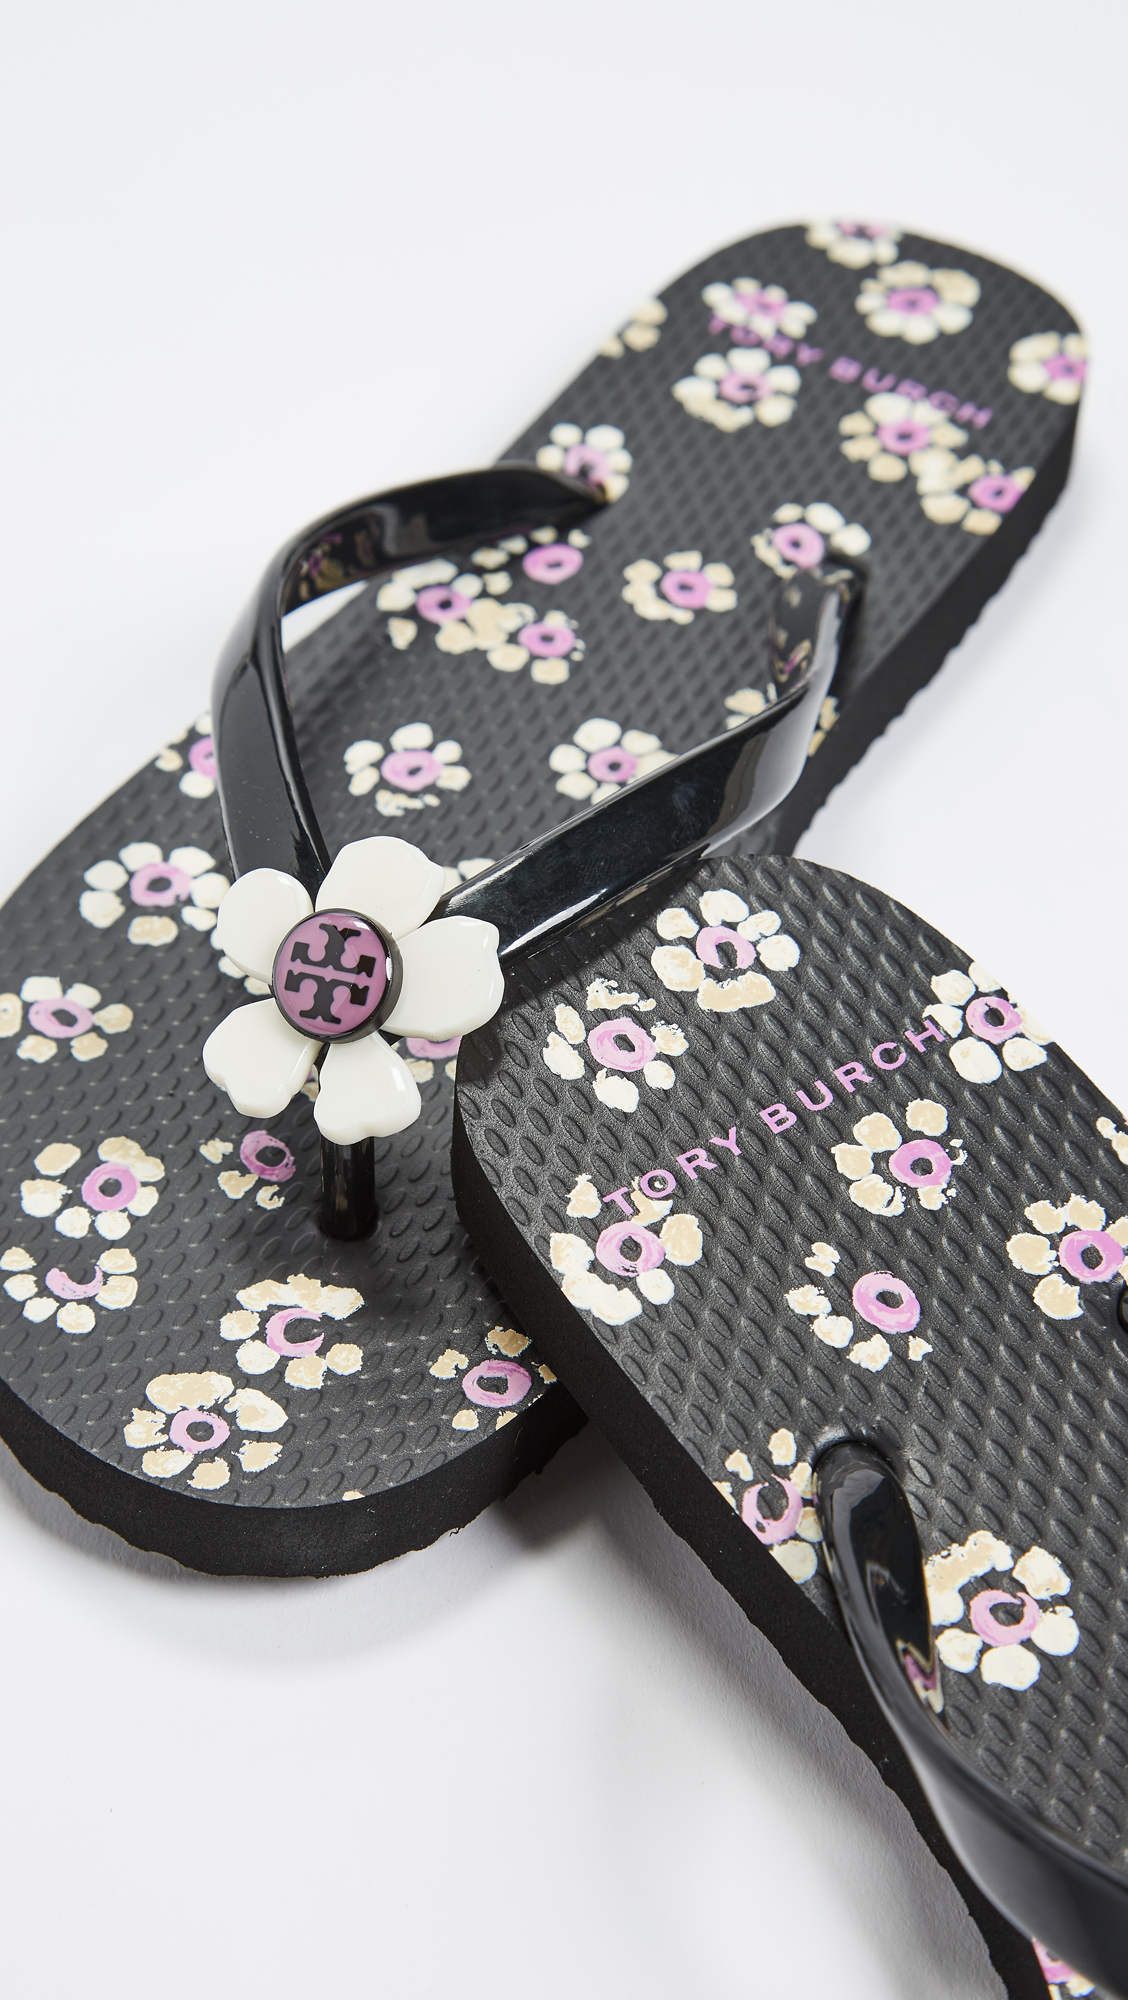 3c6e38609fb10 Tory Burch Flower Flip Flops